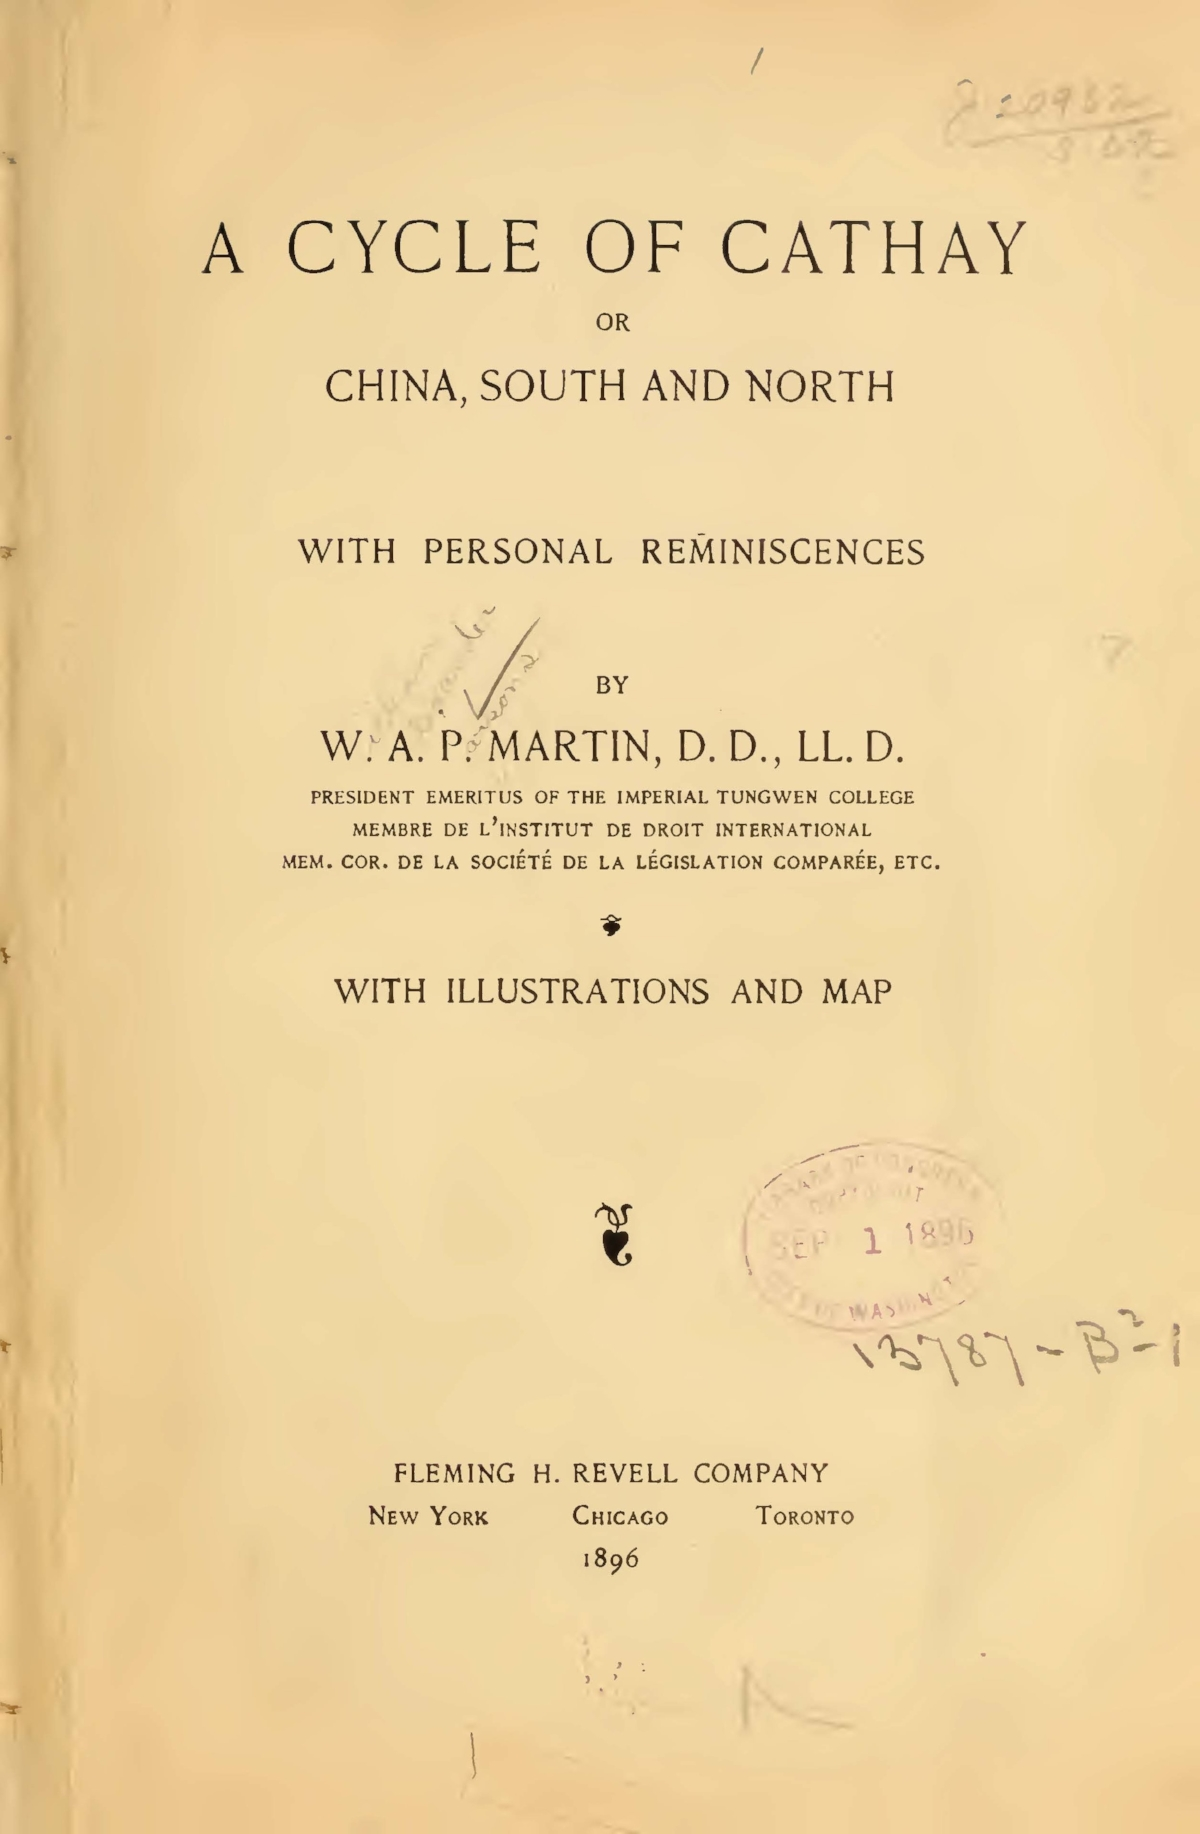 Martin, William Alexander Parsons, A Cycle of Cathay Title Page.jpg